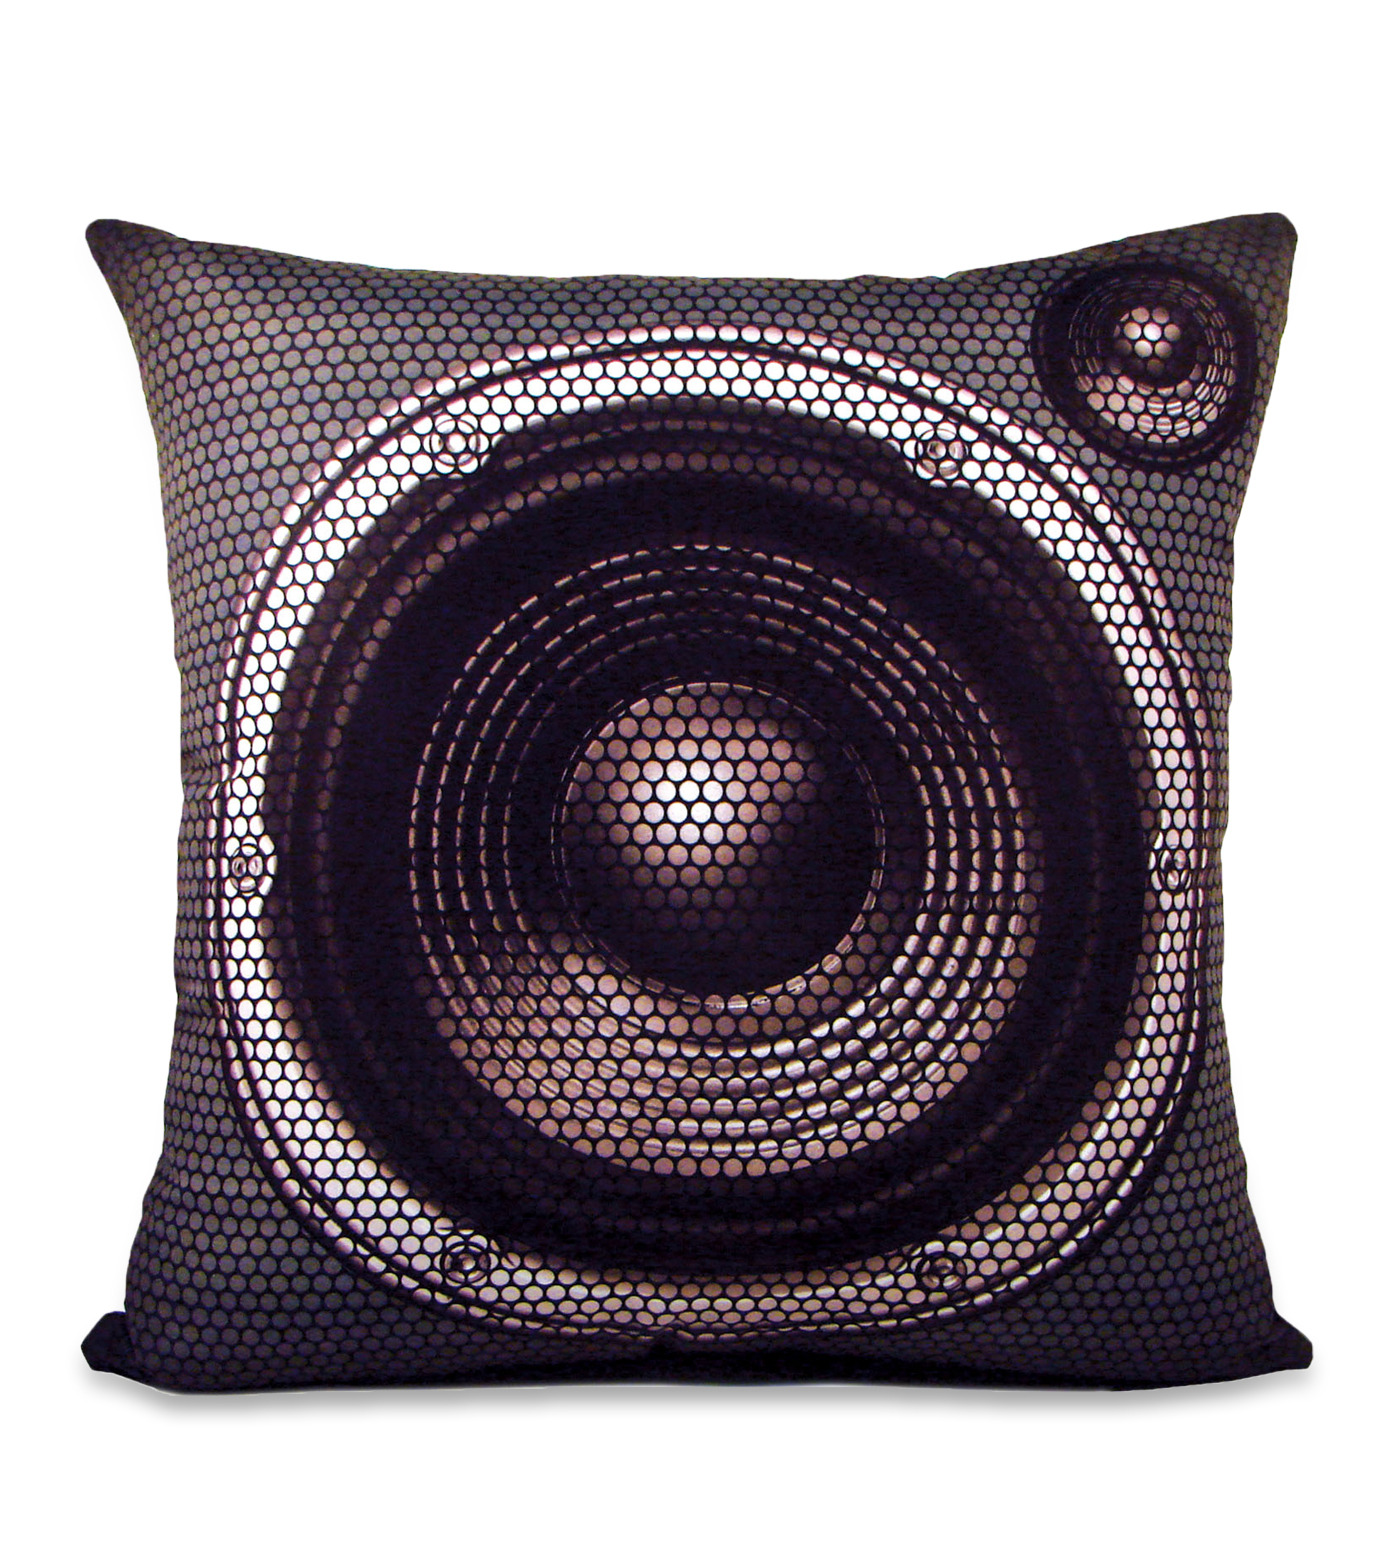 Gift Set(ギフトセット)のMusic Cushion-NONE-Giftset-mus-0 拡大詳細画像3